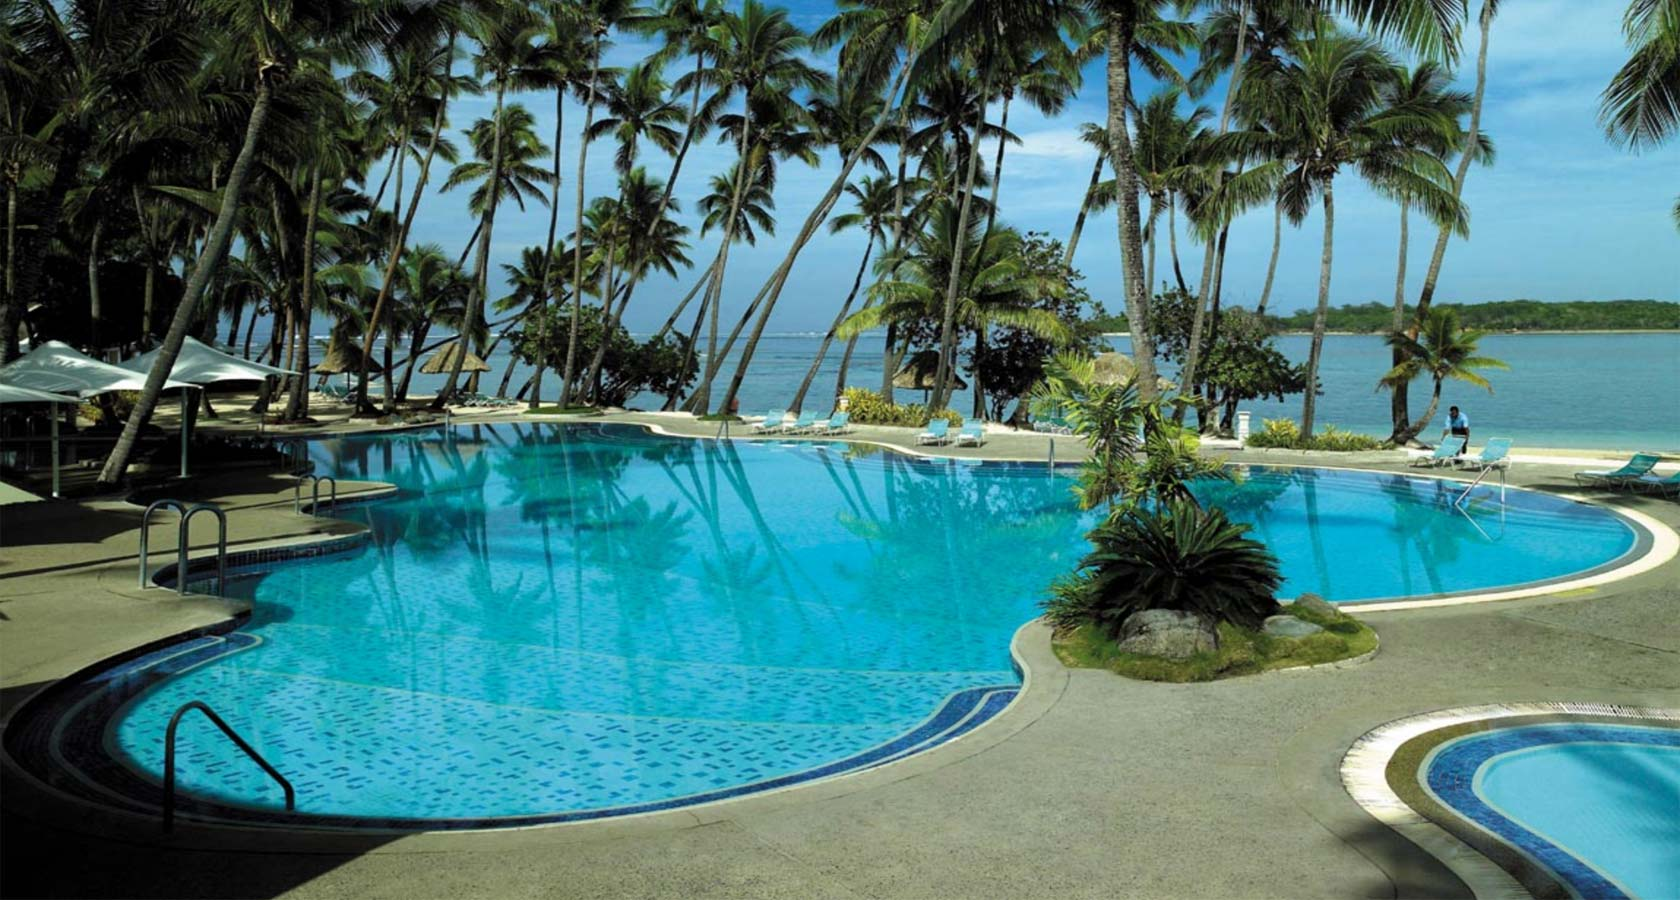 SHANGRI-LA's FIJI RESORT pool